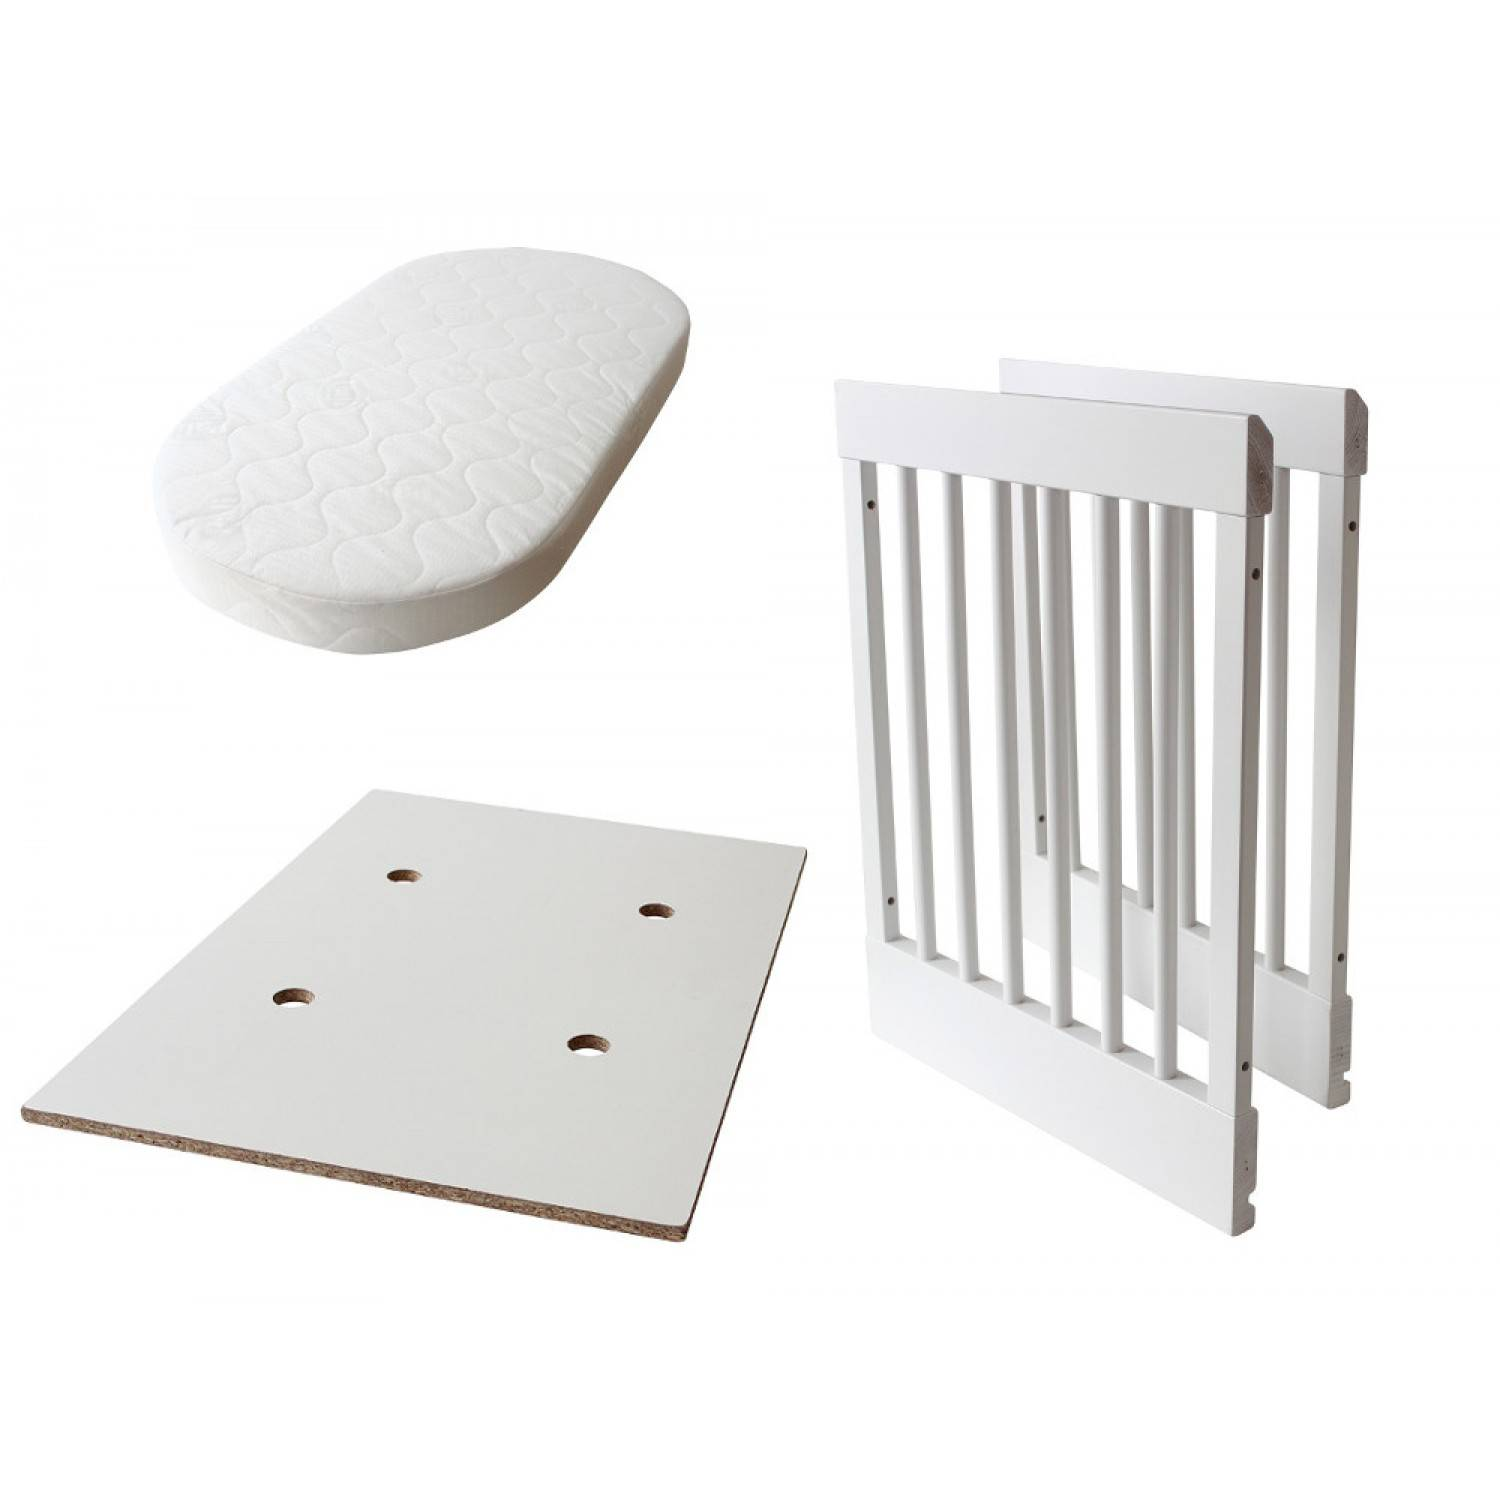 Pali Kit de transformation pour Pali Lab 03 et Lab 09 Cradle in White Bed